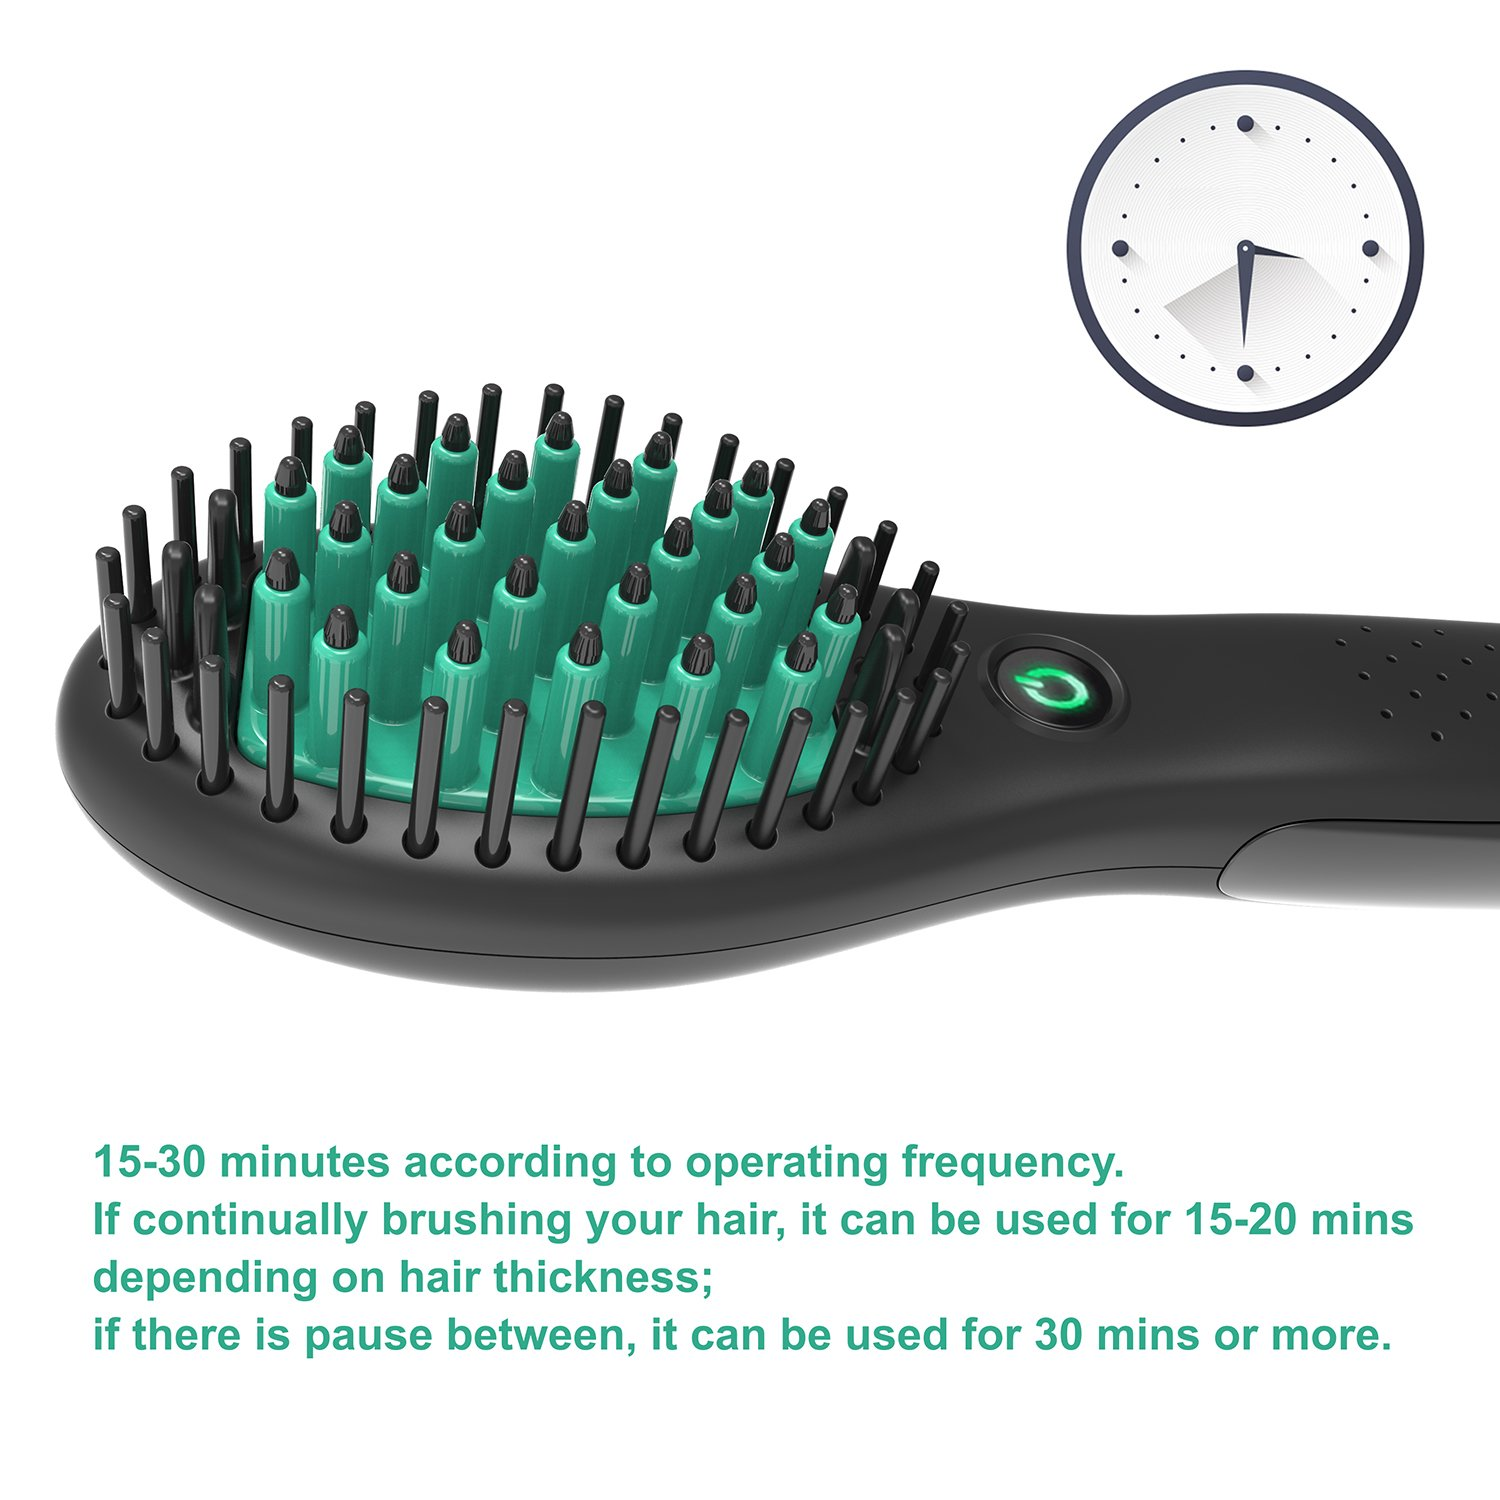 Travel Straightening Brush, Rechargeable Hair Straightening Brush (Black) by Showliss (Image #7)